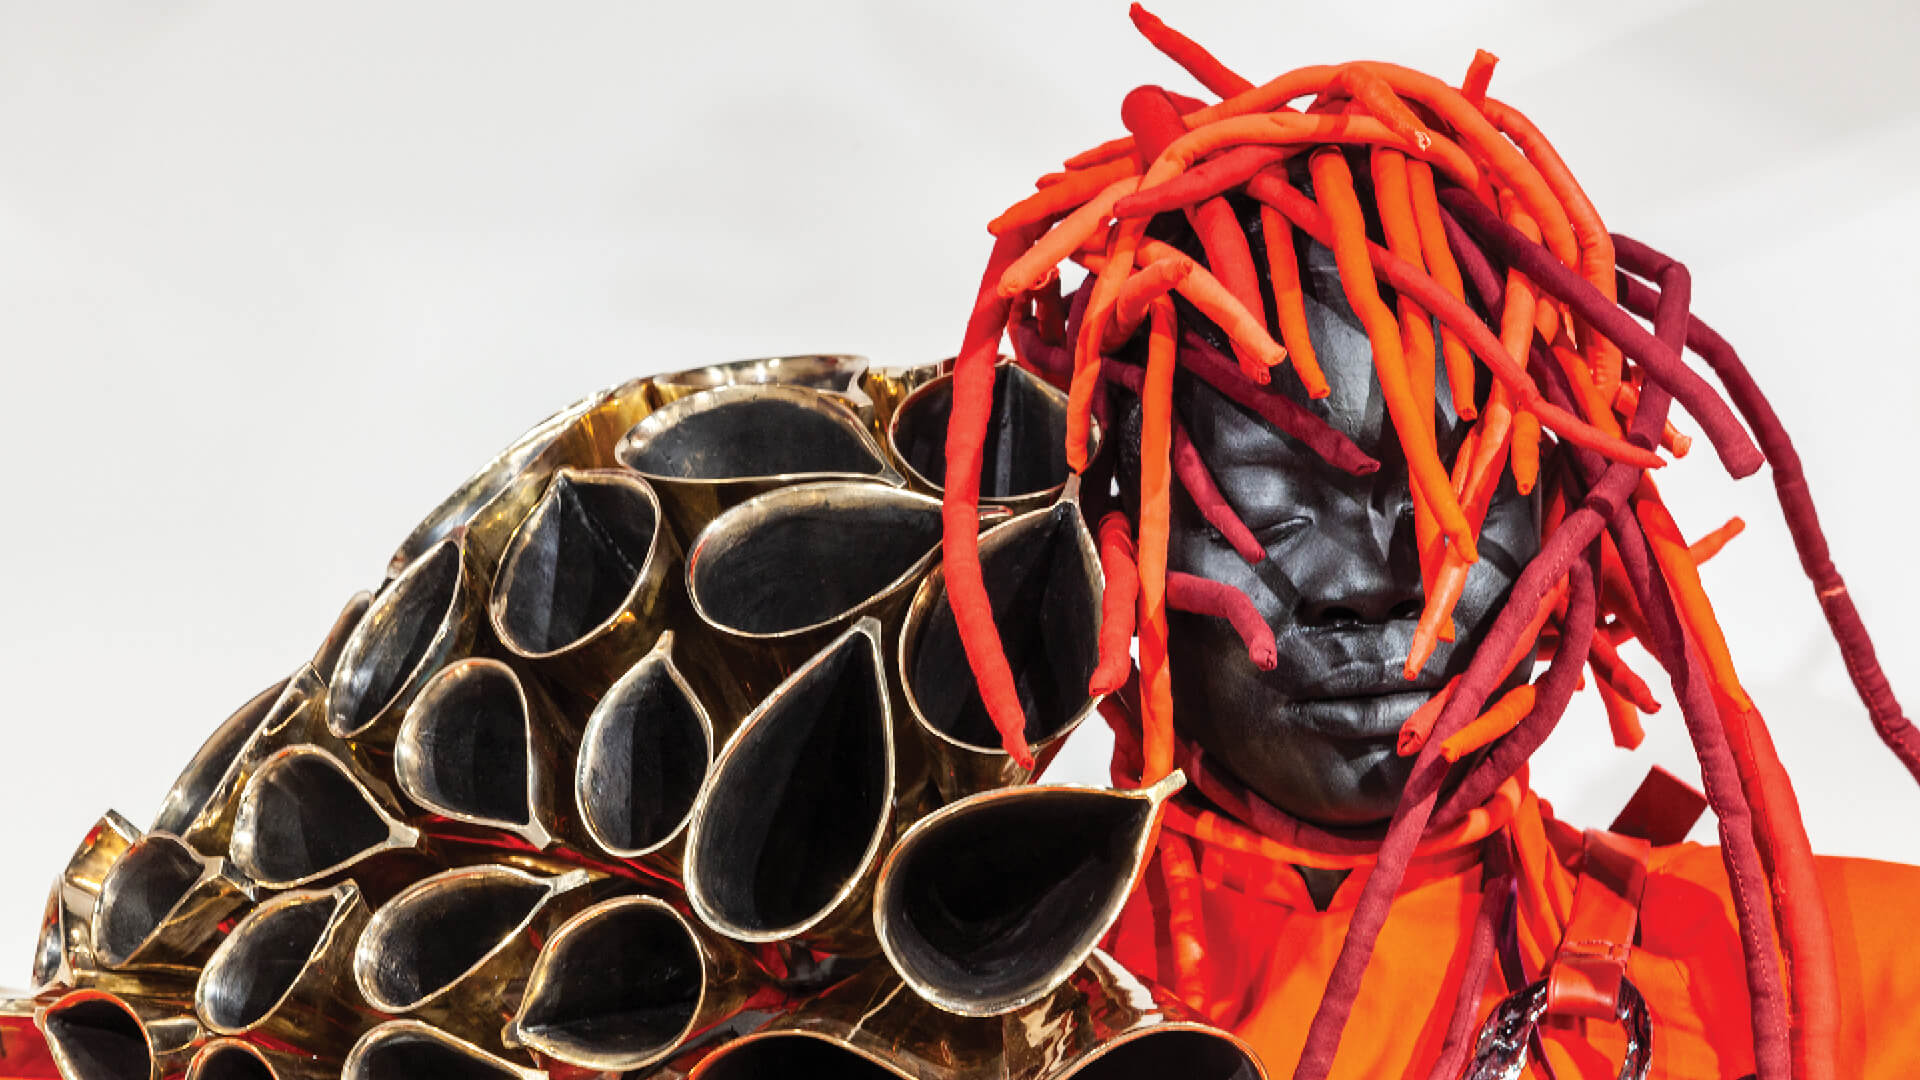 Mary Sibande, The Domba Dance, 2019, Installation view at Art Basel Miami | The Domba Dance | Mary Sibande| STIRworld